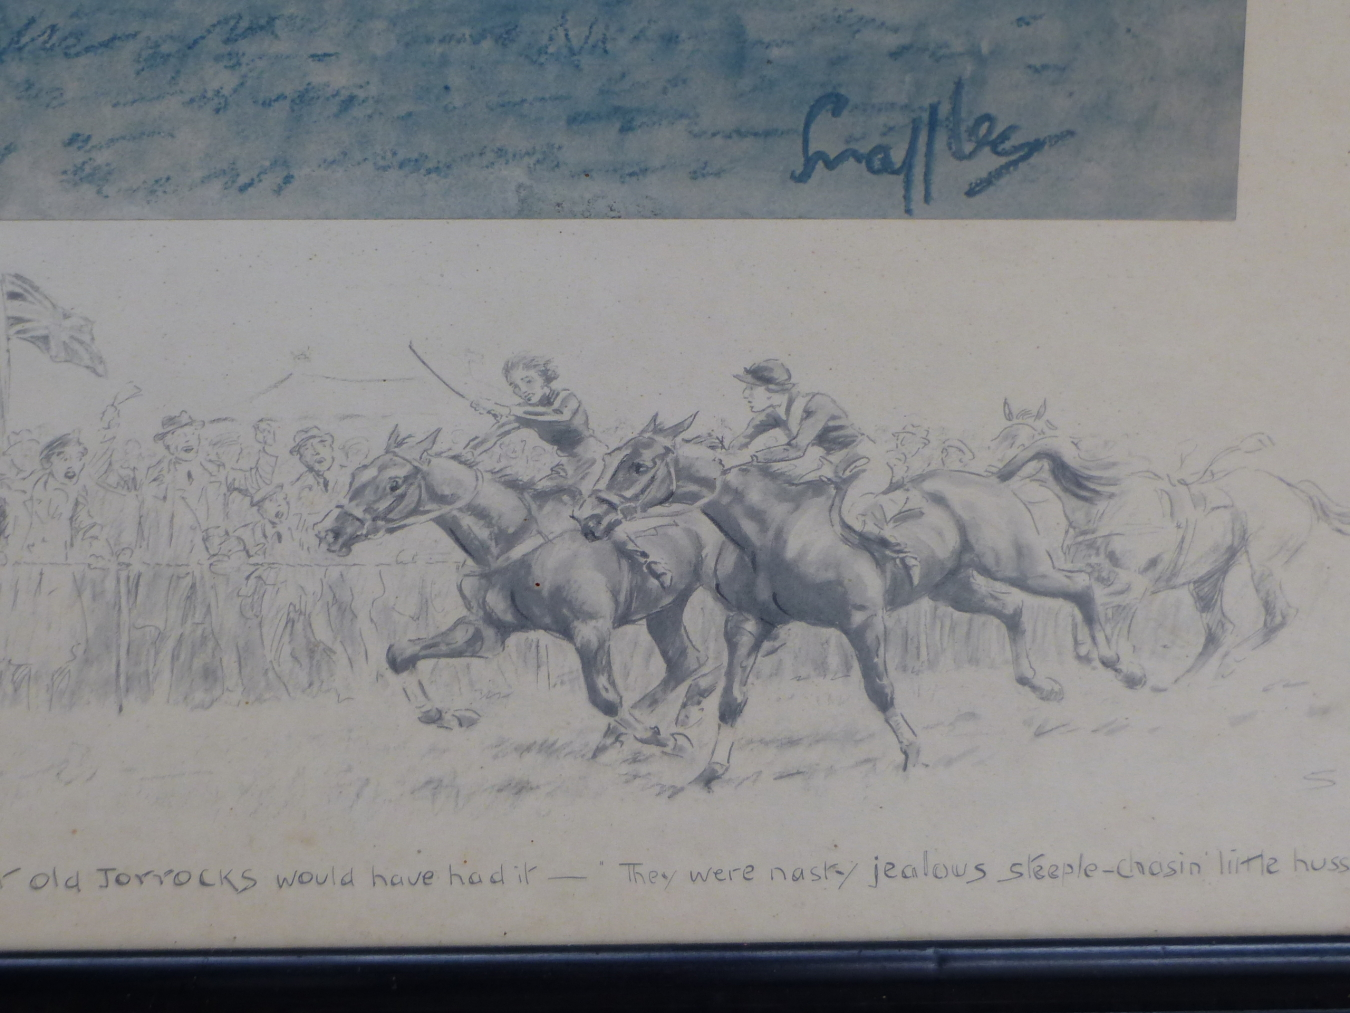 SNAFFLES, CHARLES JOHNSON PAYNE (1884-1967) A SIGHT TO TAKE HOME AND DREAM ABOUT. PENCIL SIGNED - Image 4 of 4